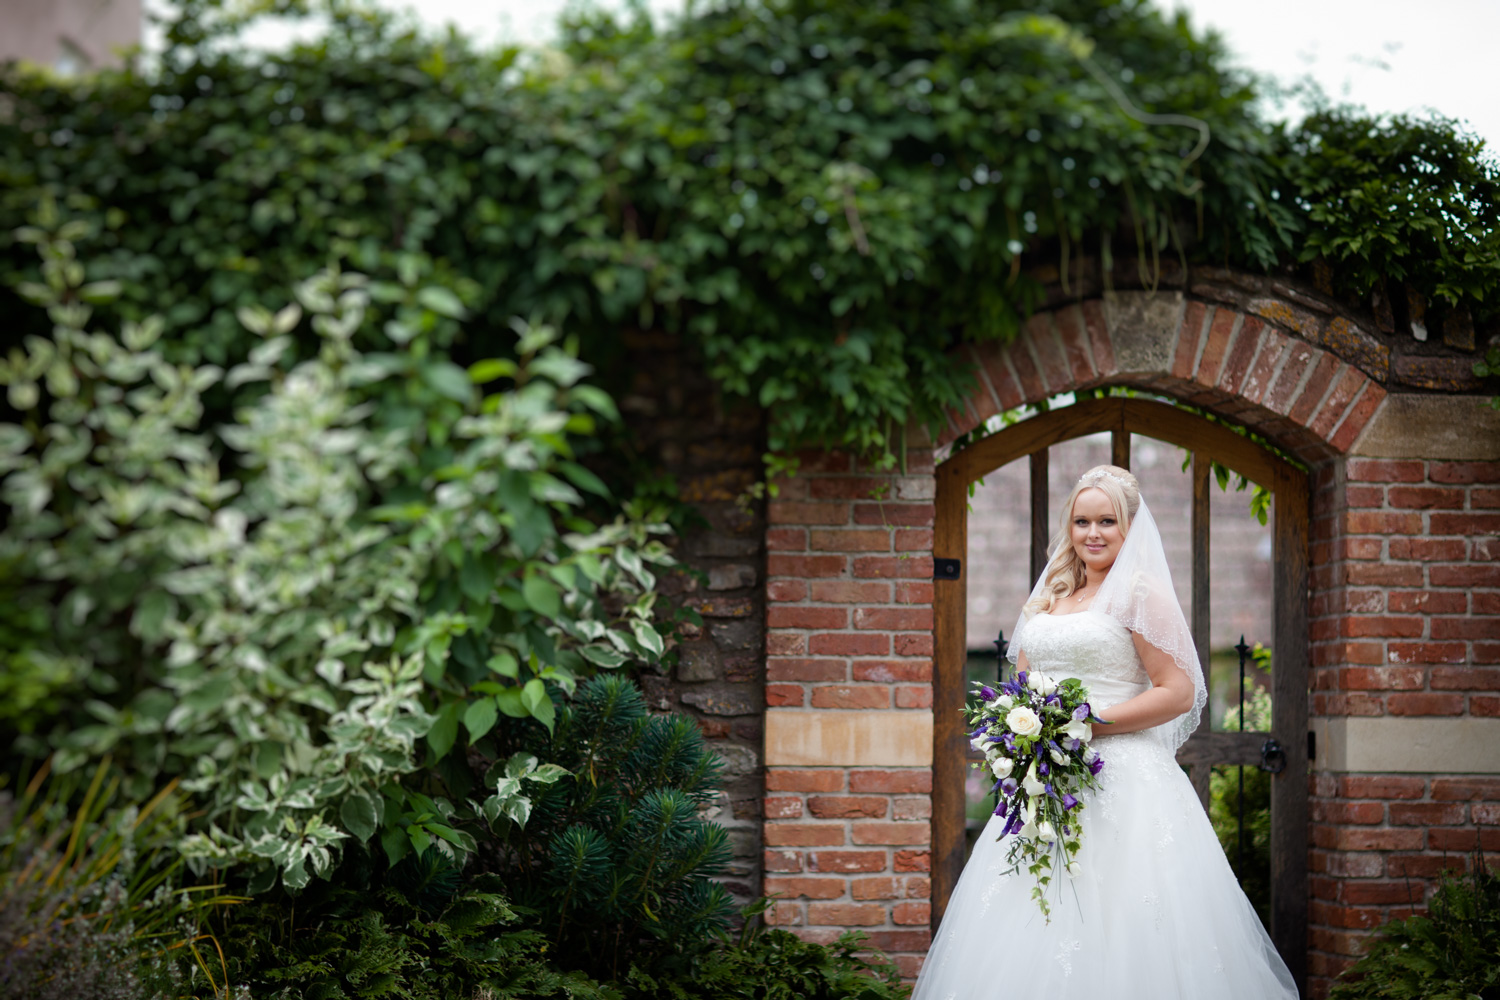 Mark_Barnes_Bristol-wedding-photography-aldwick-court-farm-and-vineyard-wedding-Photography-35.jpg